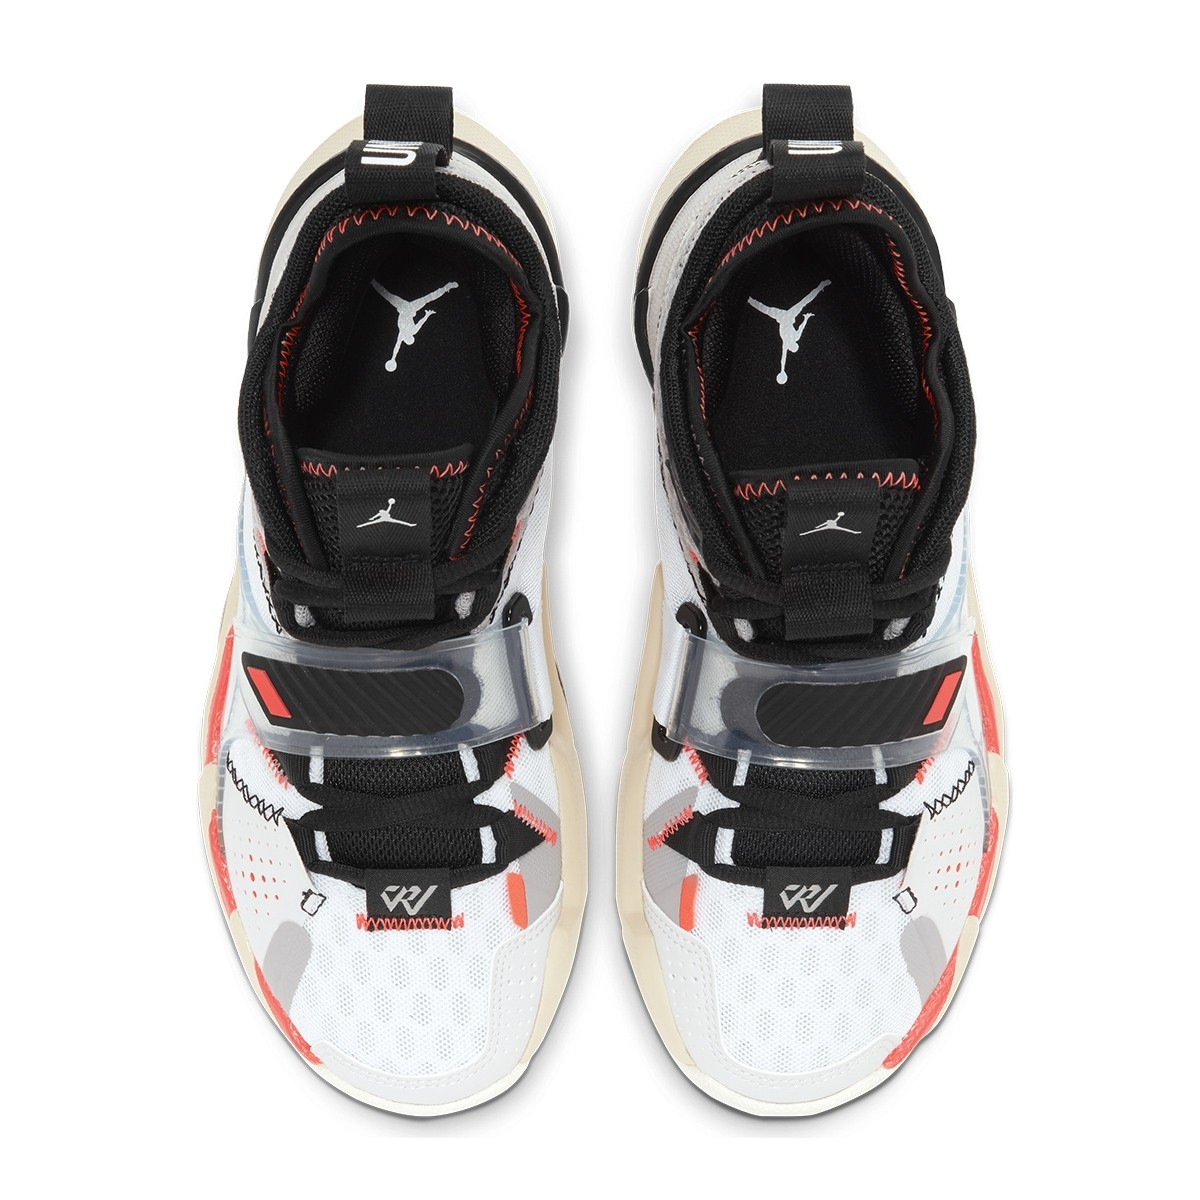 Jordan Why Not Zer0.3 GS 'Unite'-CD5804-101